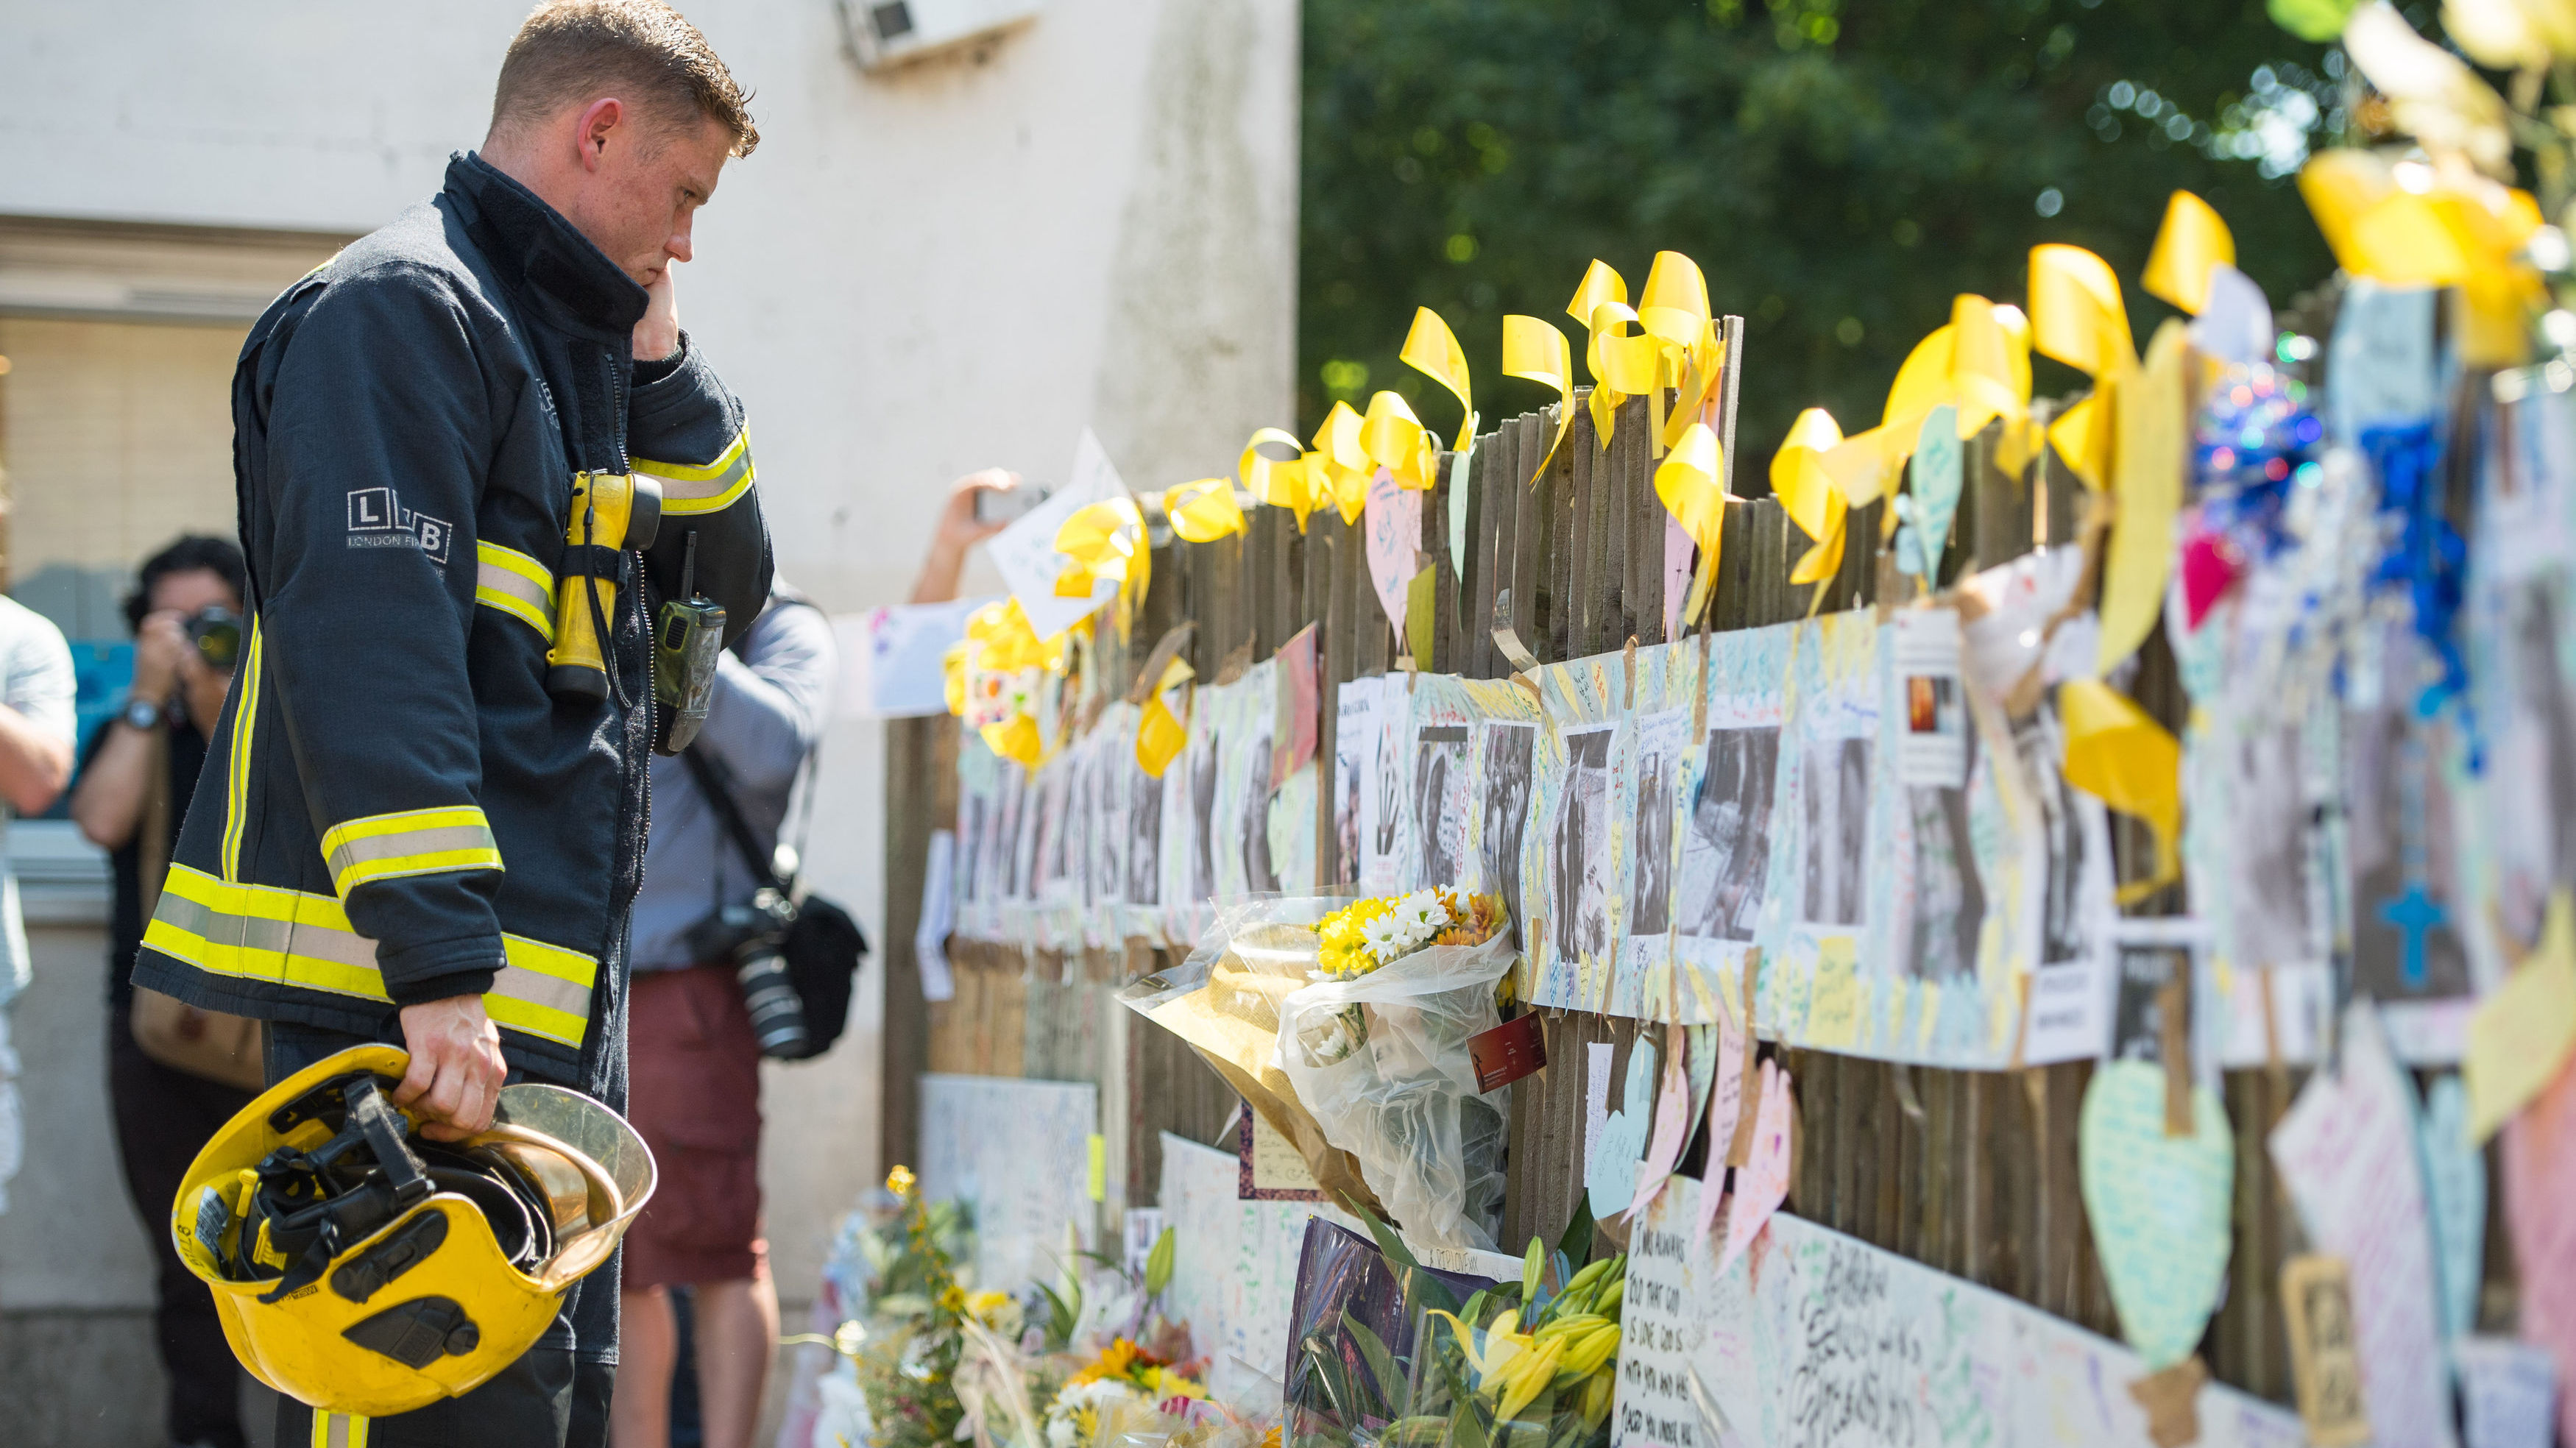 A firefighter looks at tributes to presumed victims of the Grenfell Tower fire, after observing a minute